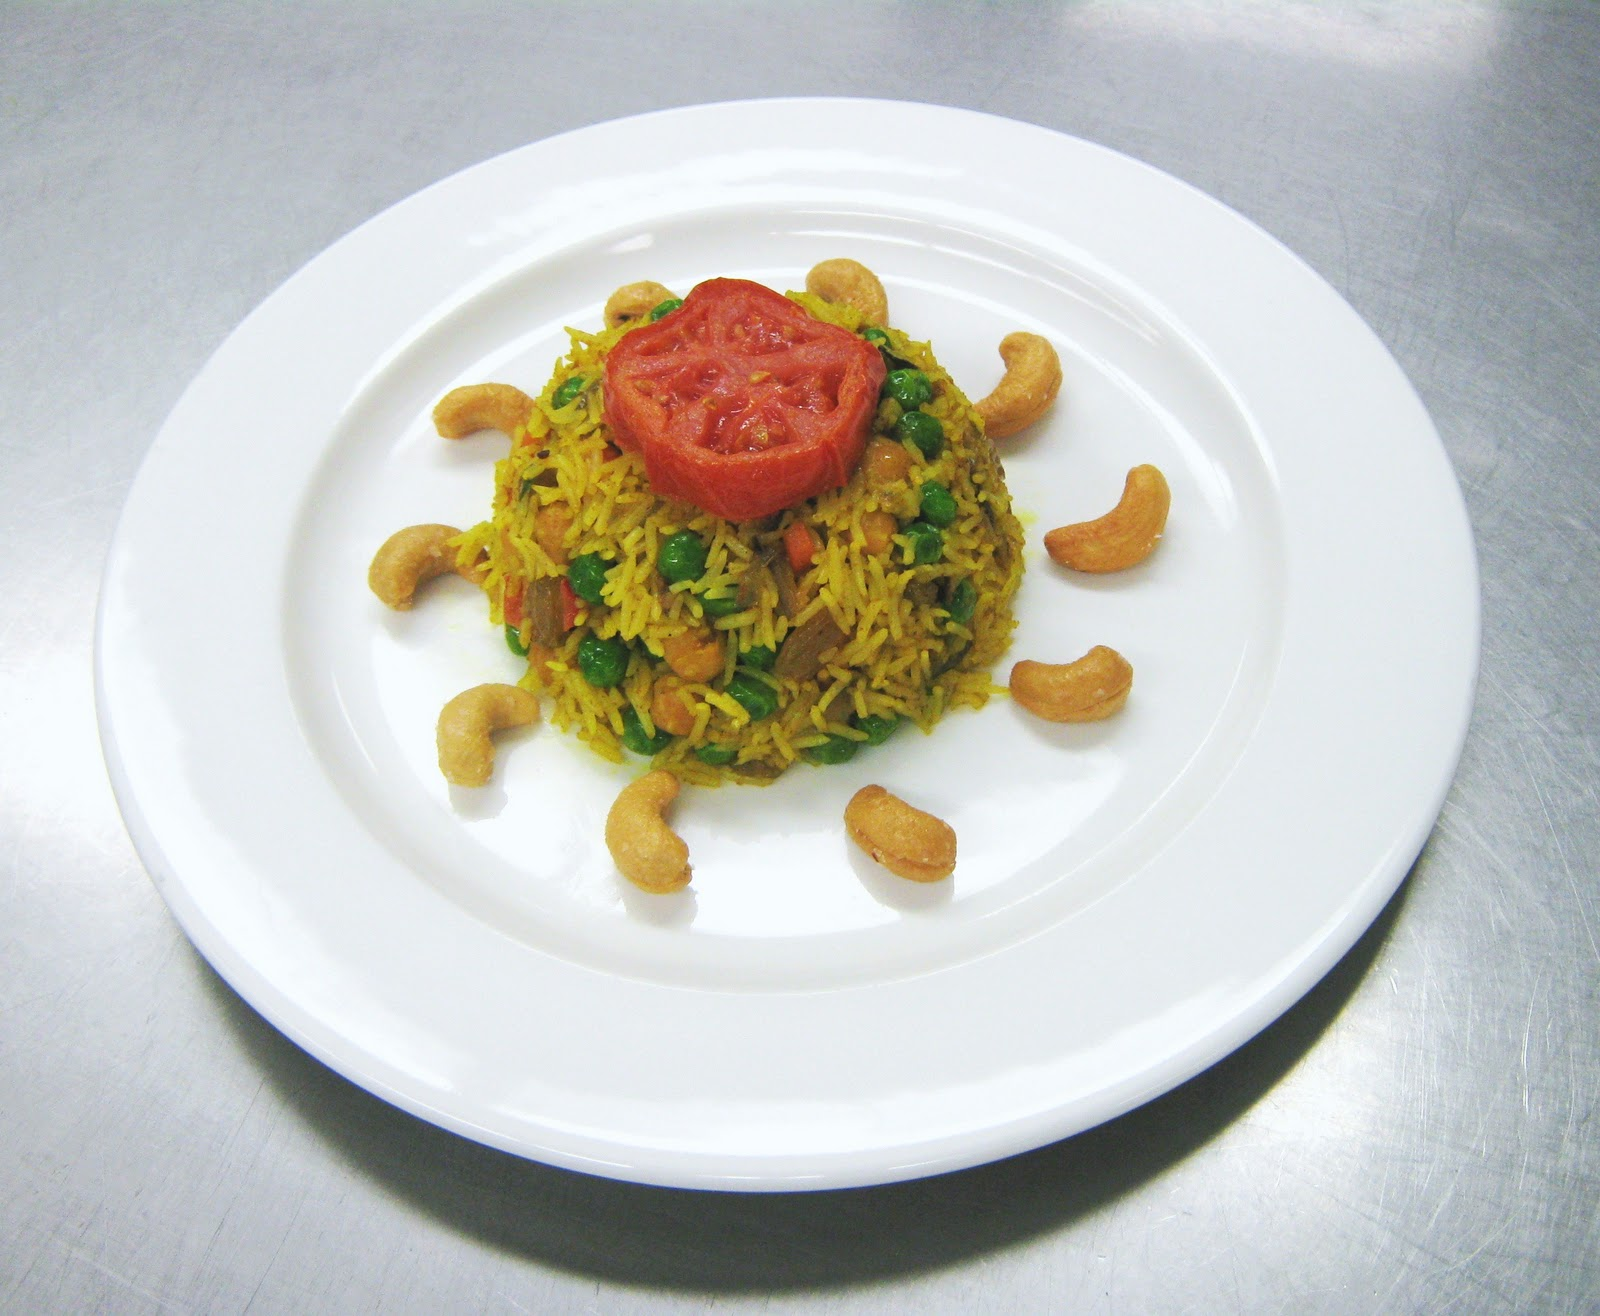 Professional Vegan Cooking and More: Vegan Entrees Photo Gallery